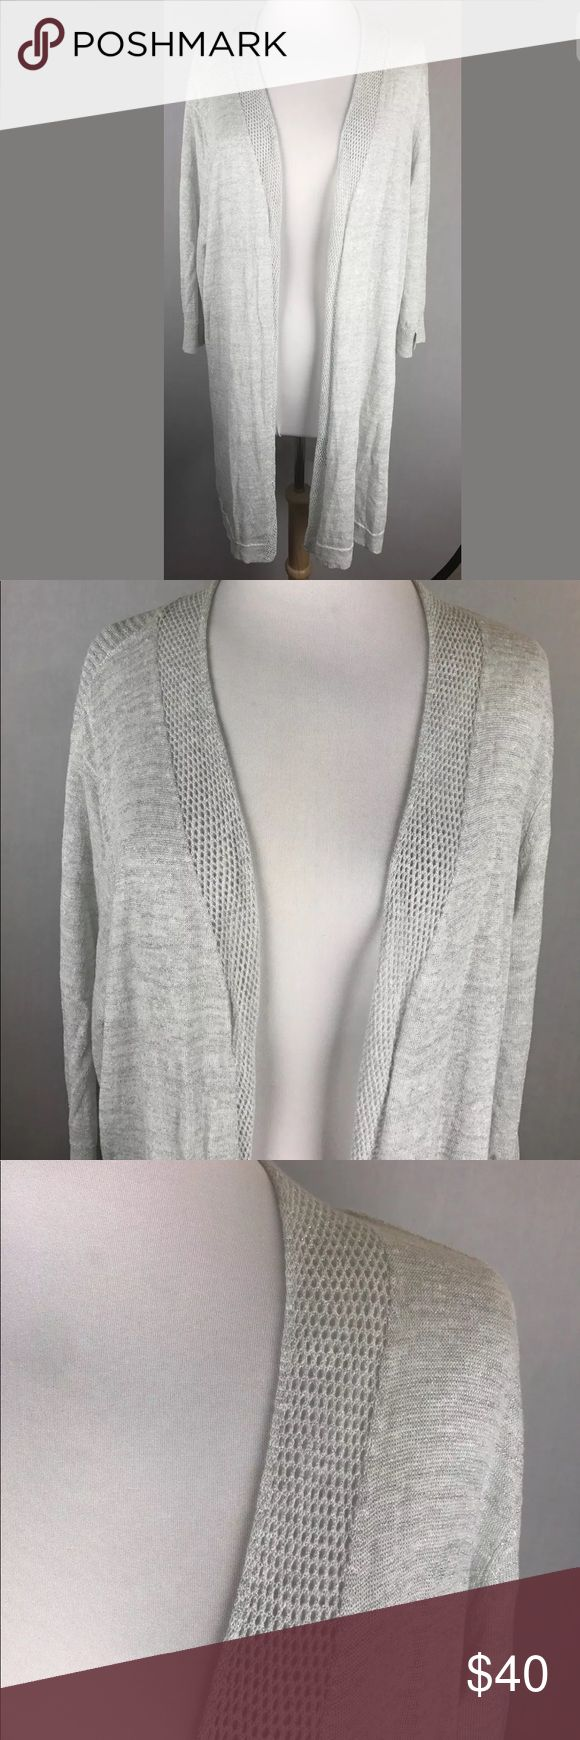 "Nic + Zoe silver cardigan sweater Nic + Zoe Size 2x Silver gray with a hint of shimmer Nice light weight.  Cardigan  Excellent pre-owned condition  Measurements (laying flat, unstretched) Shoulder to shoulder across the back 20.5"" Under arms across the back 30"" 35.5"" down center of back NIC + ZOE Sweaters Cardigans"